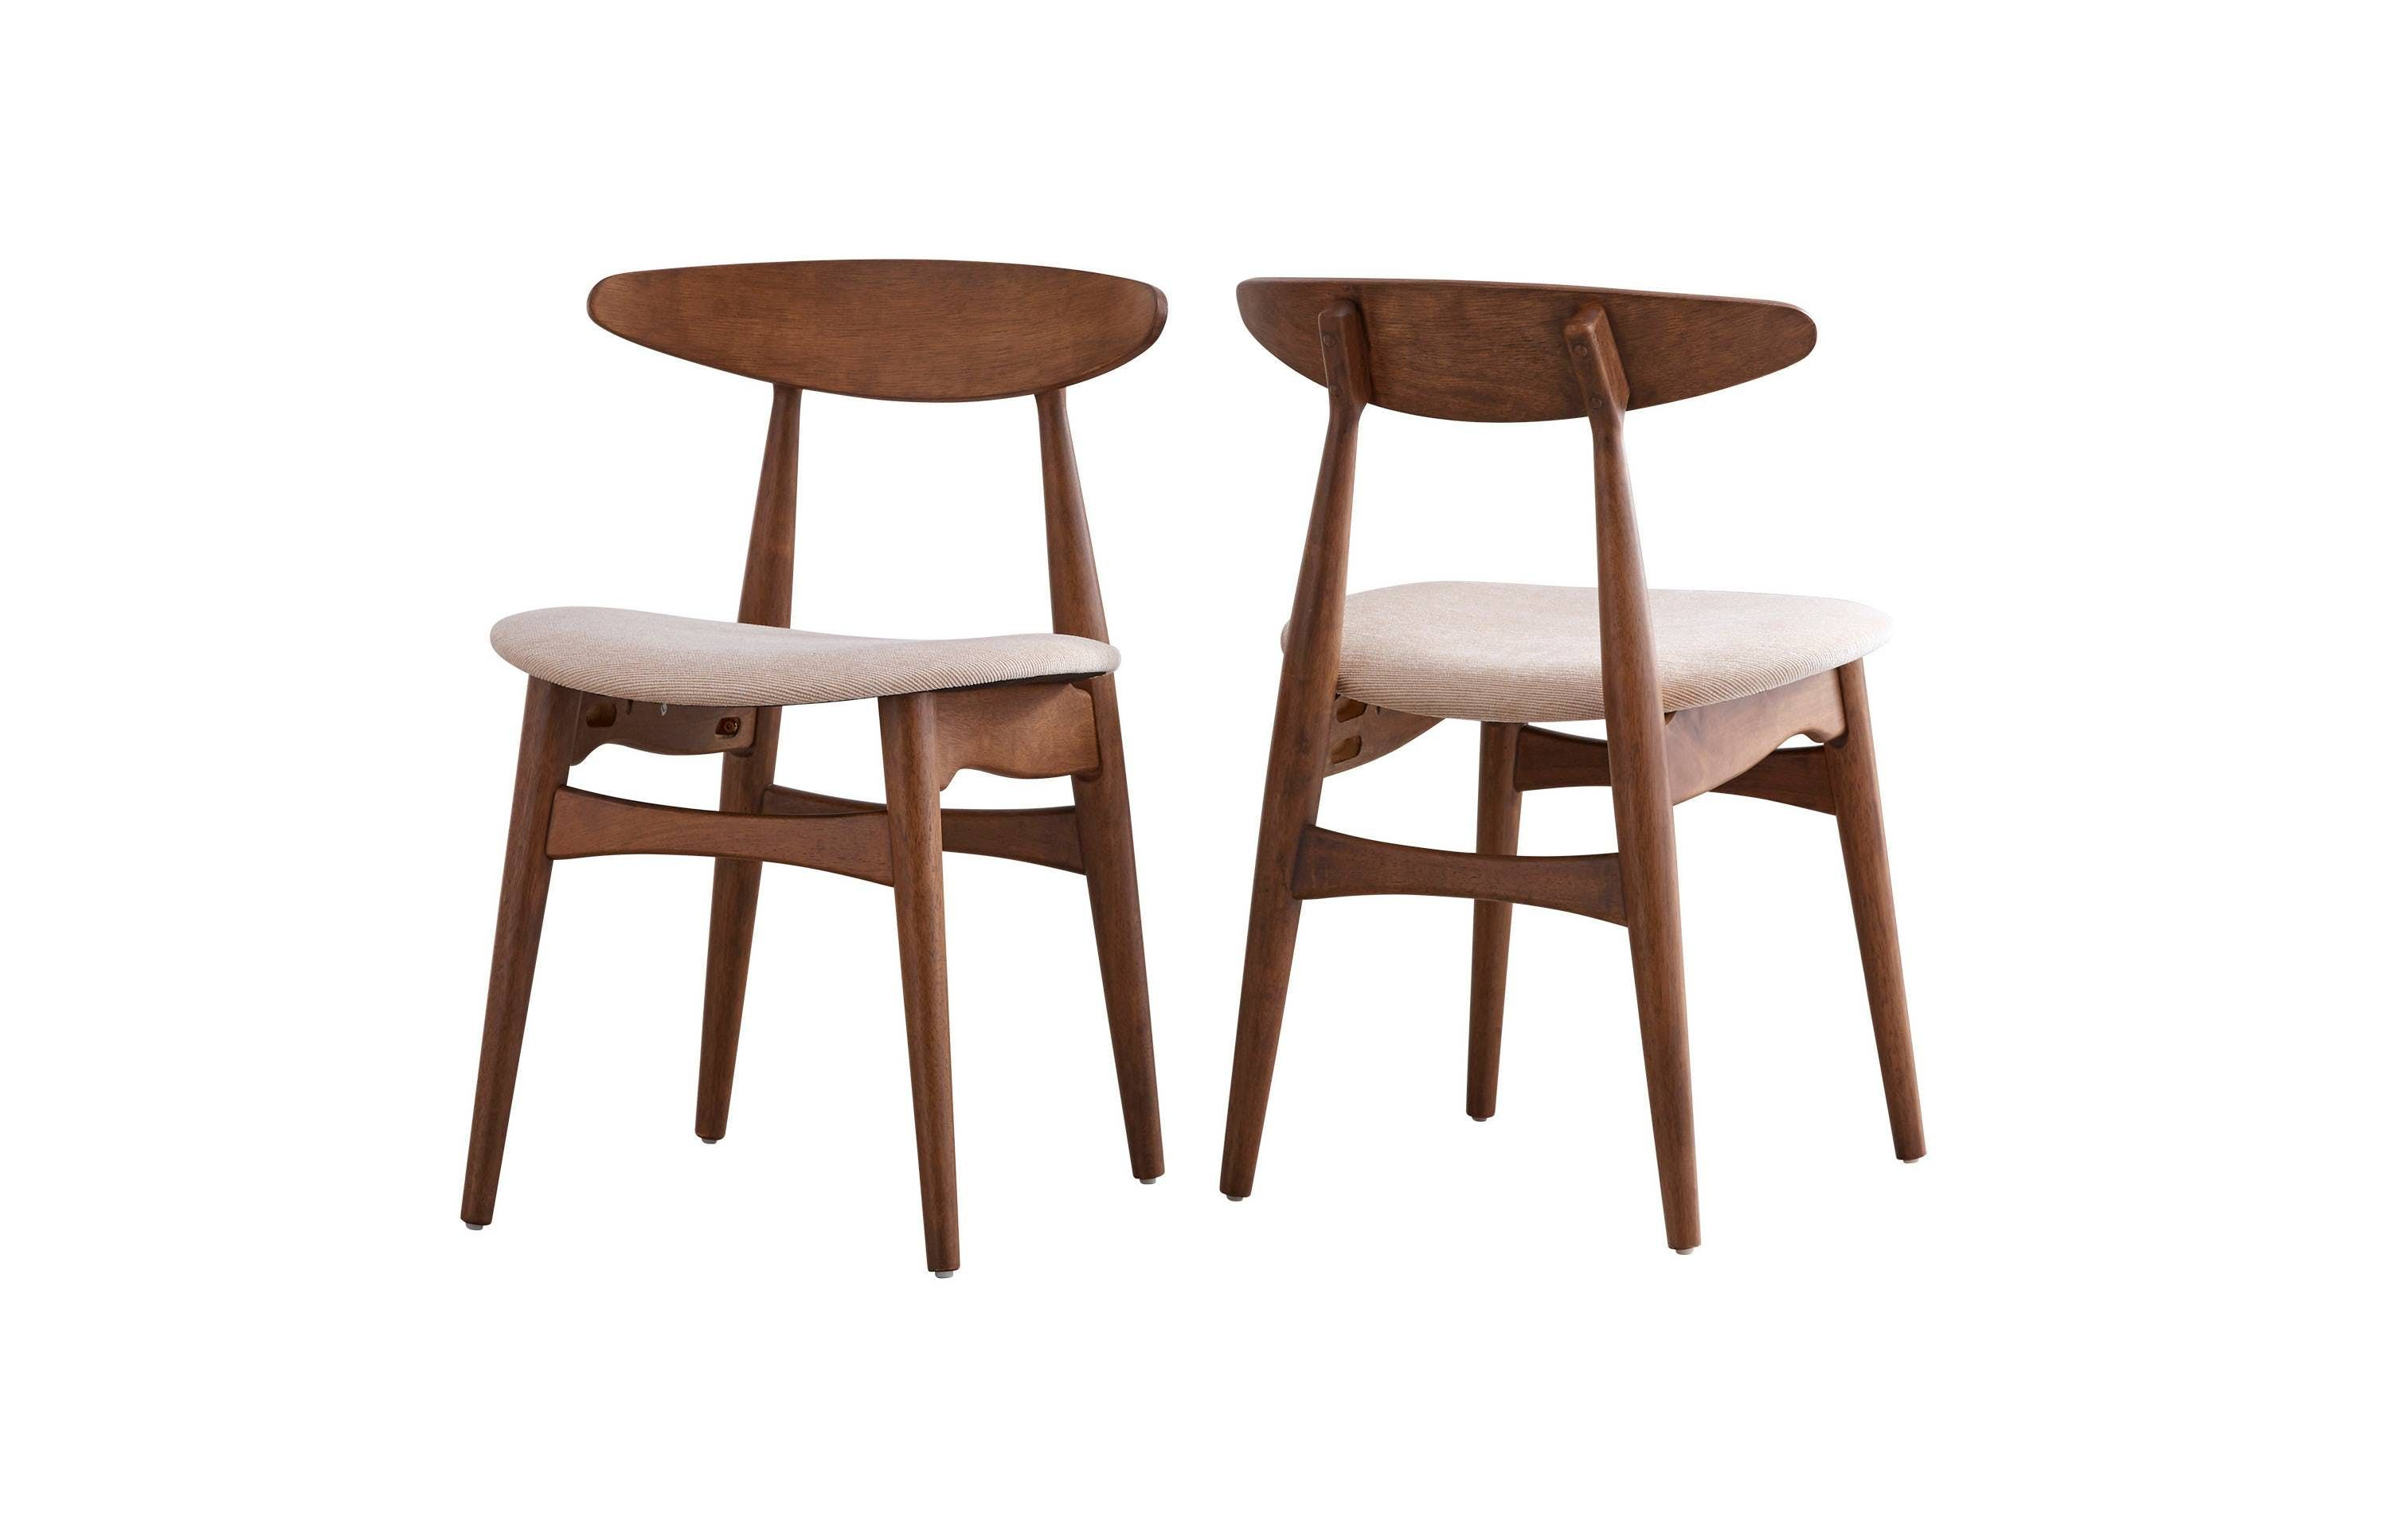 Targets Labor Day Sale Our Picks For The Best Deals Modern Dining ChairsDining